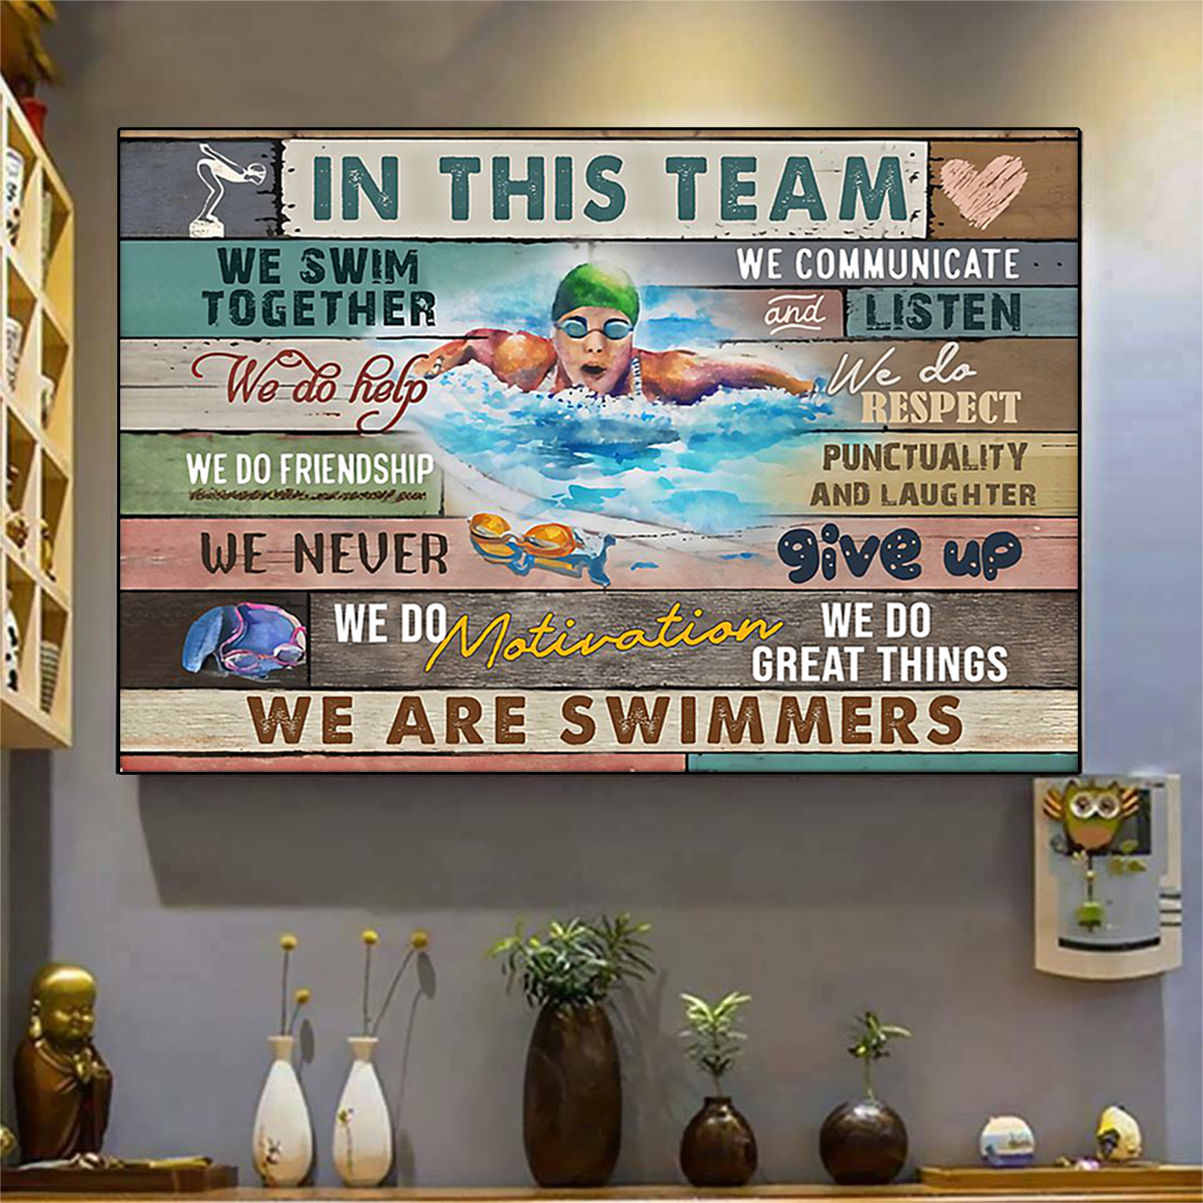 Swimming in this team poster A1